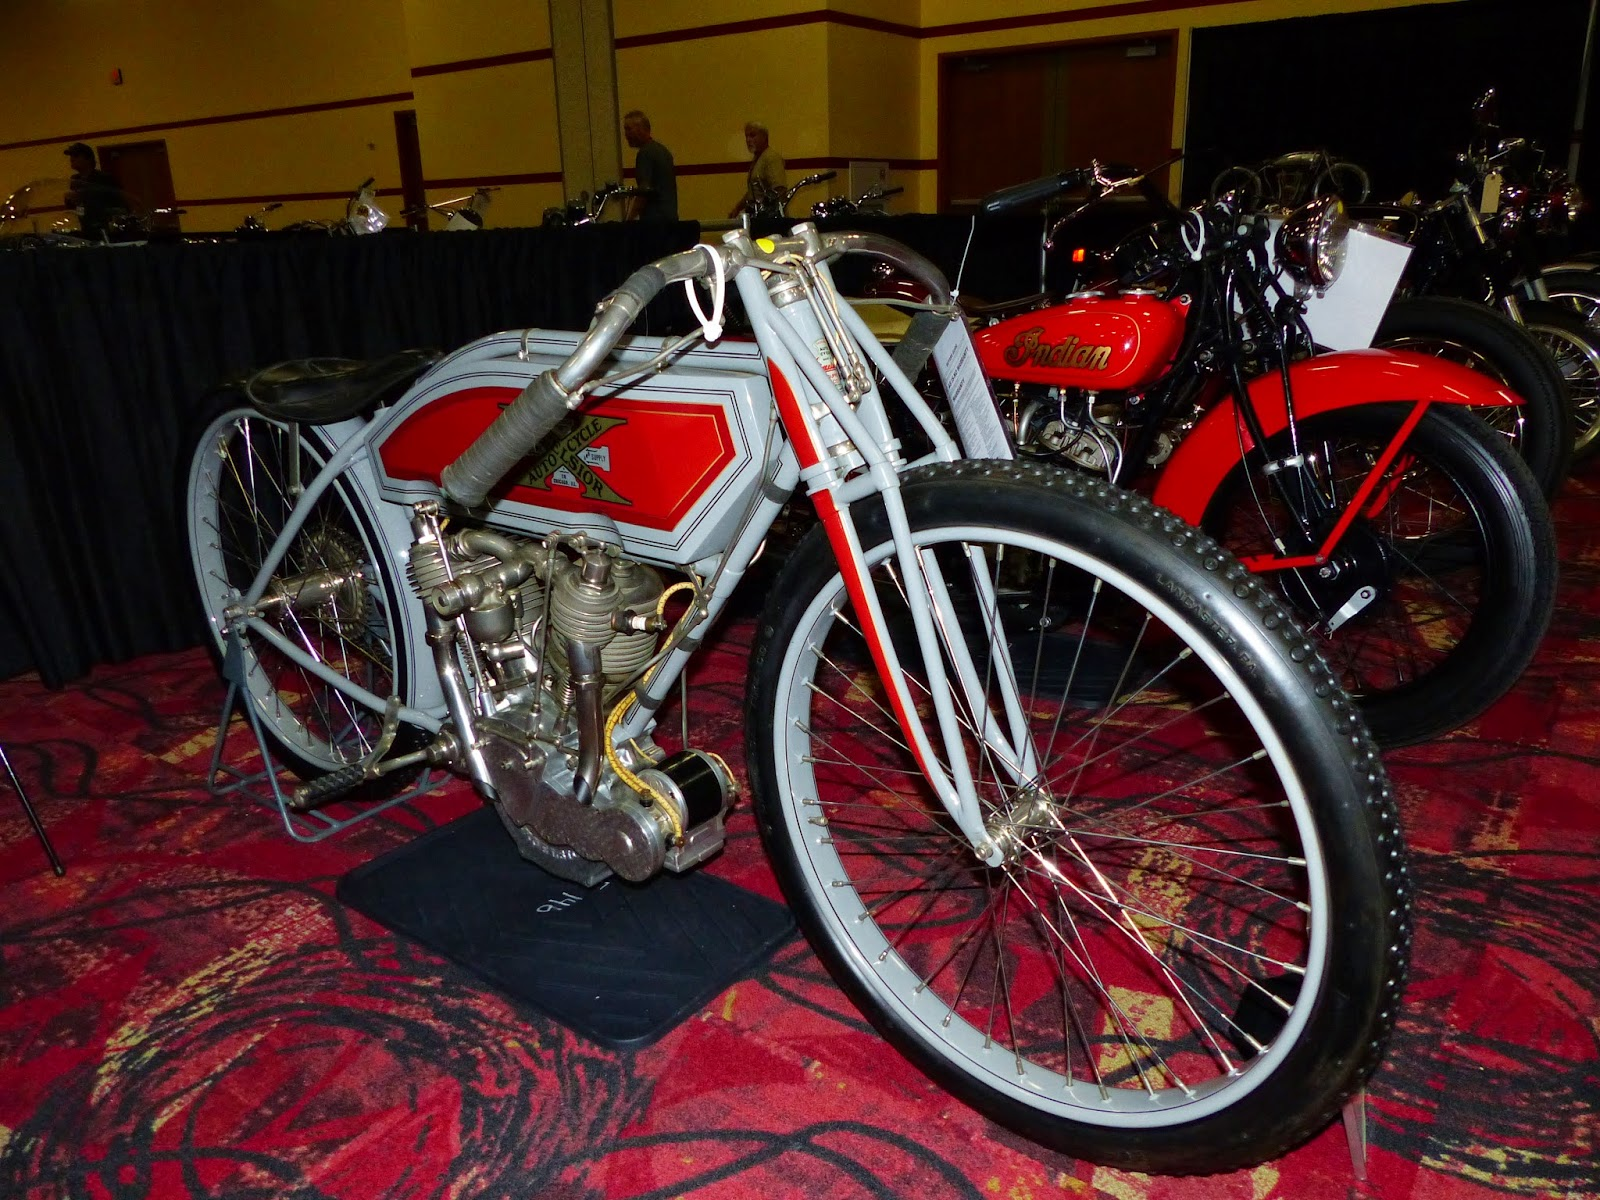 1913 Excelsior Board Track Racer For Sale At The 2015 Mecum Las Vegas Motorcycle Auction